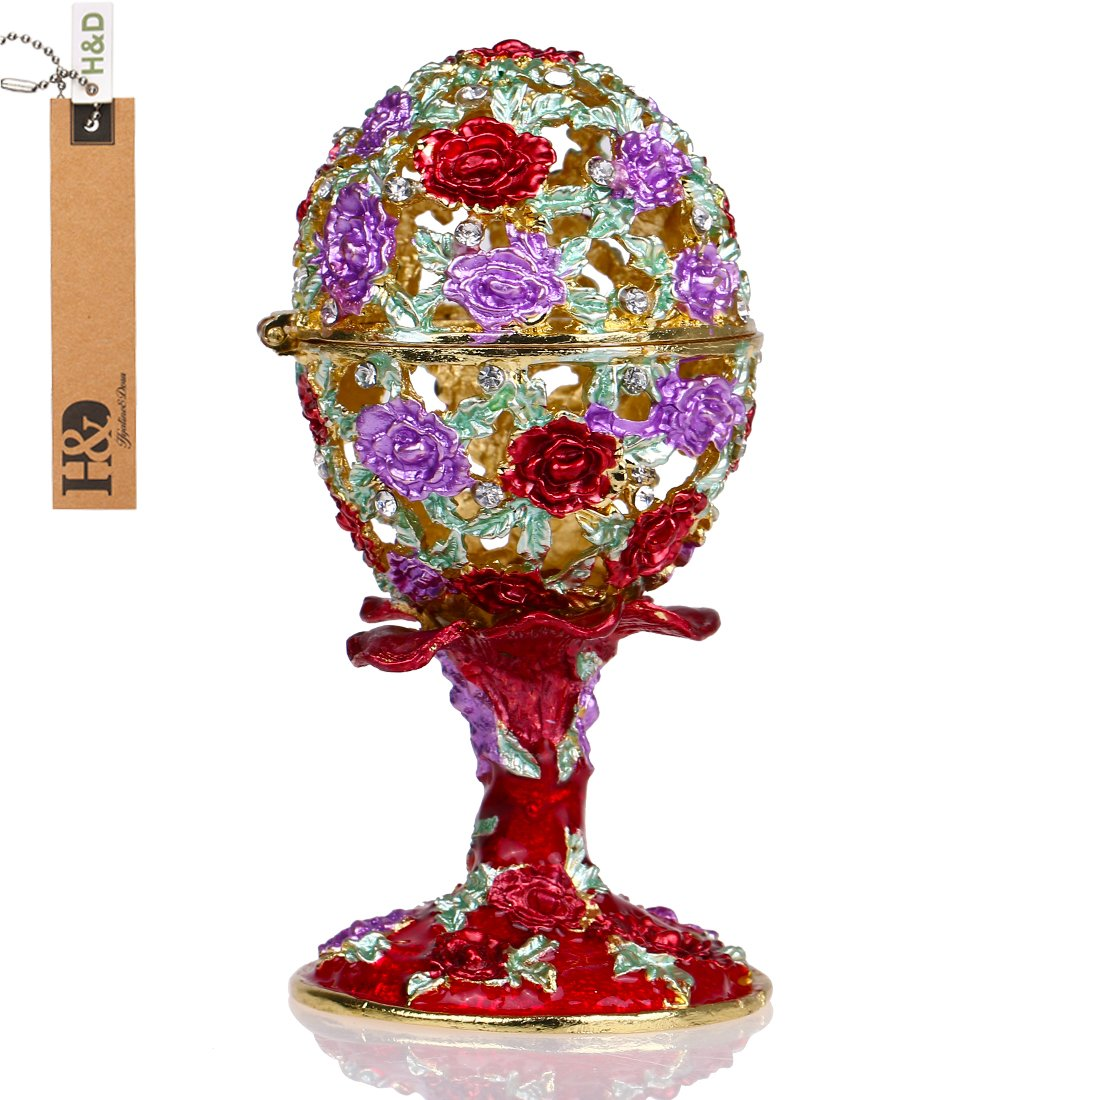 YUFENG Faberge Egg Holder Trinket Box Hinged Jewelry Ring Holder Collectible Figurine Boxes YUFENG CRAFTS MANUFACTURE CO. LTD